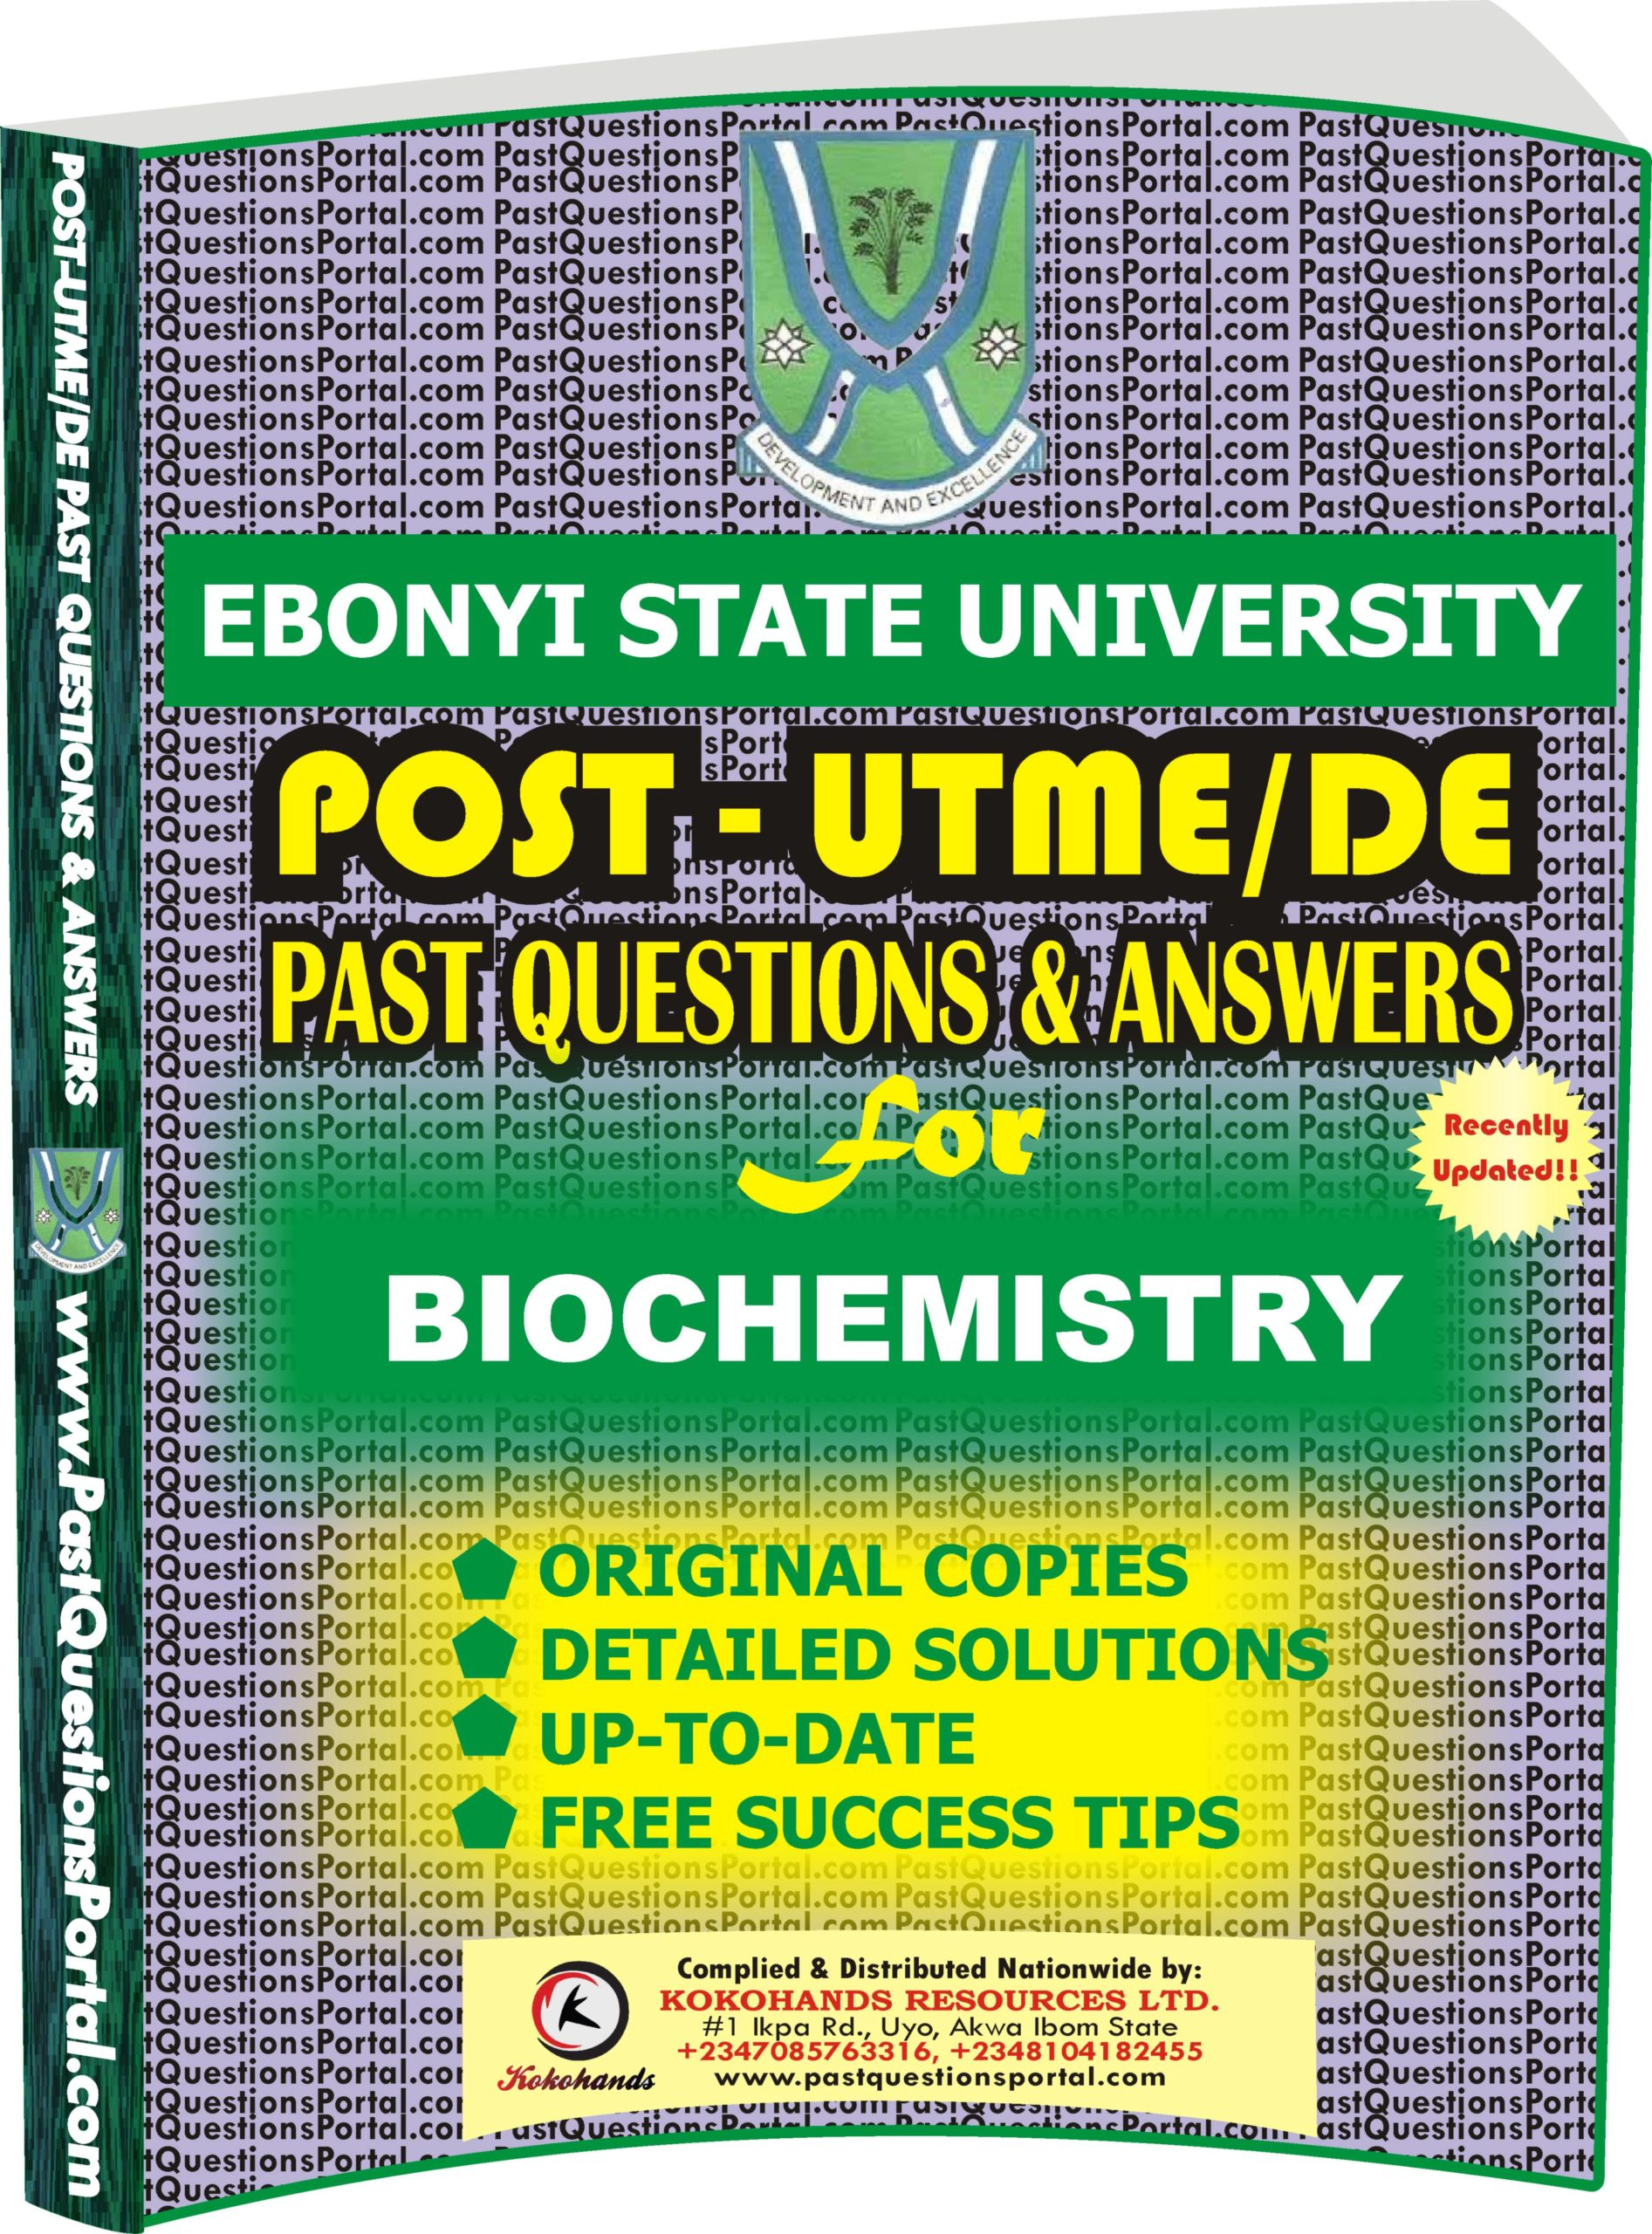 EBSU Post UTME Past Questions for BIOCHEMISTRY